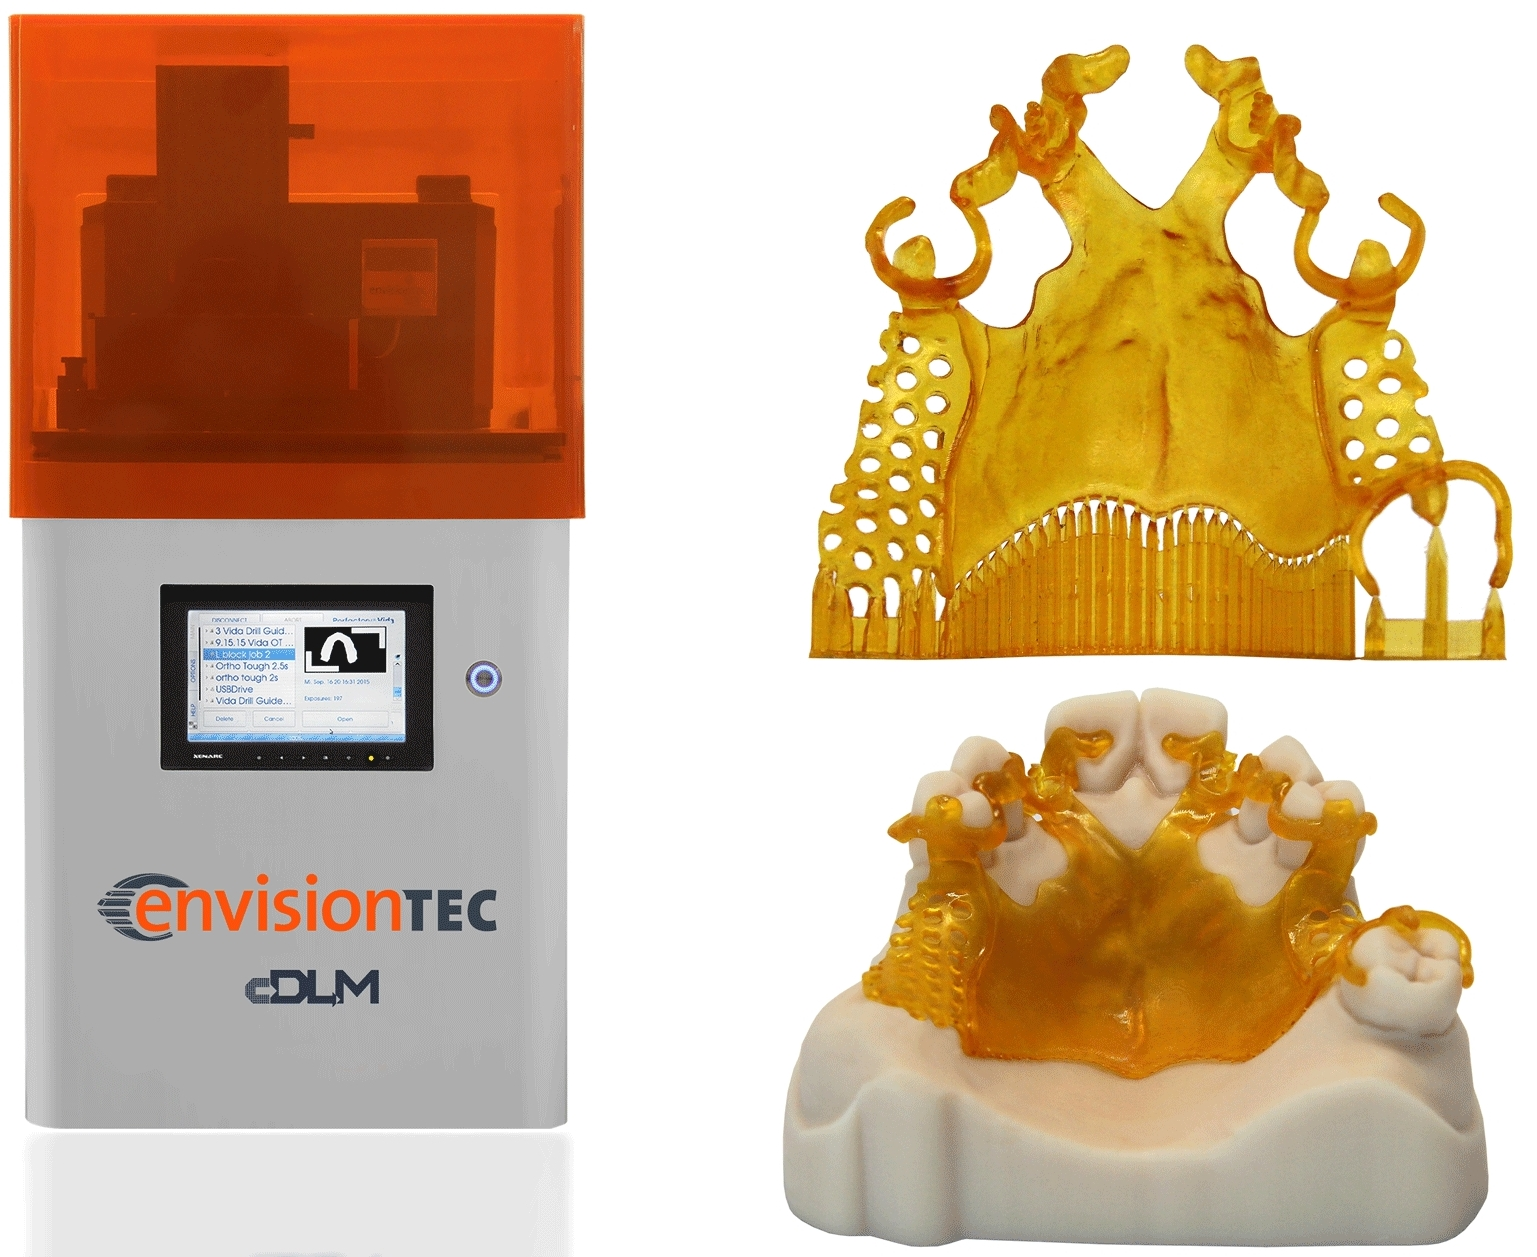 The Vida cDLM 3D printer. Image via EnvisionTec.